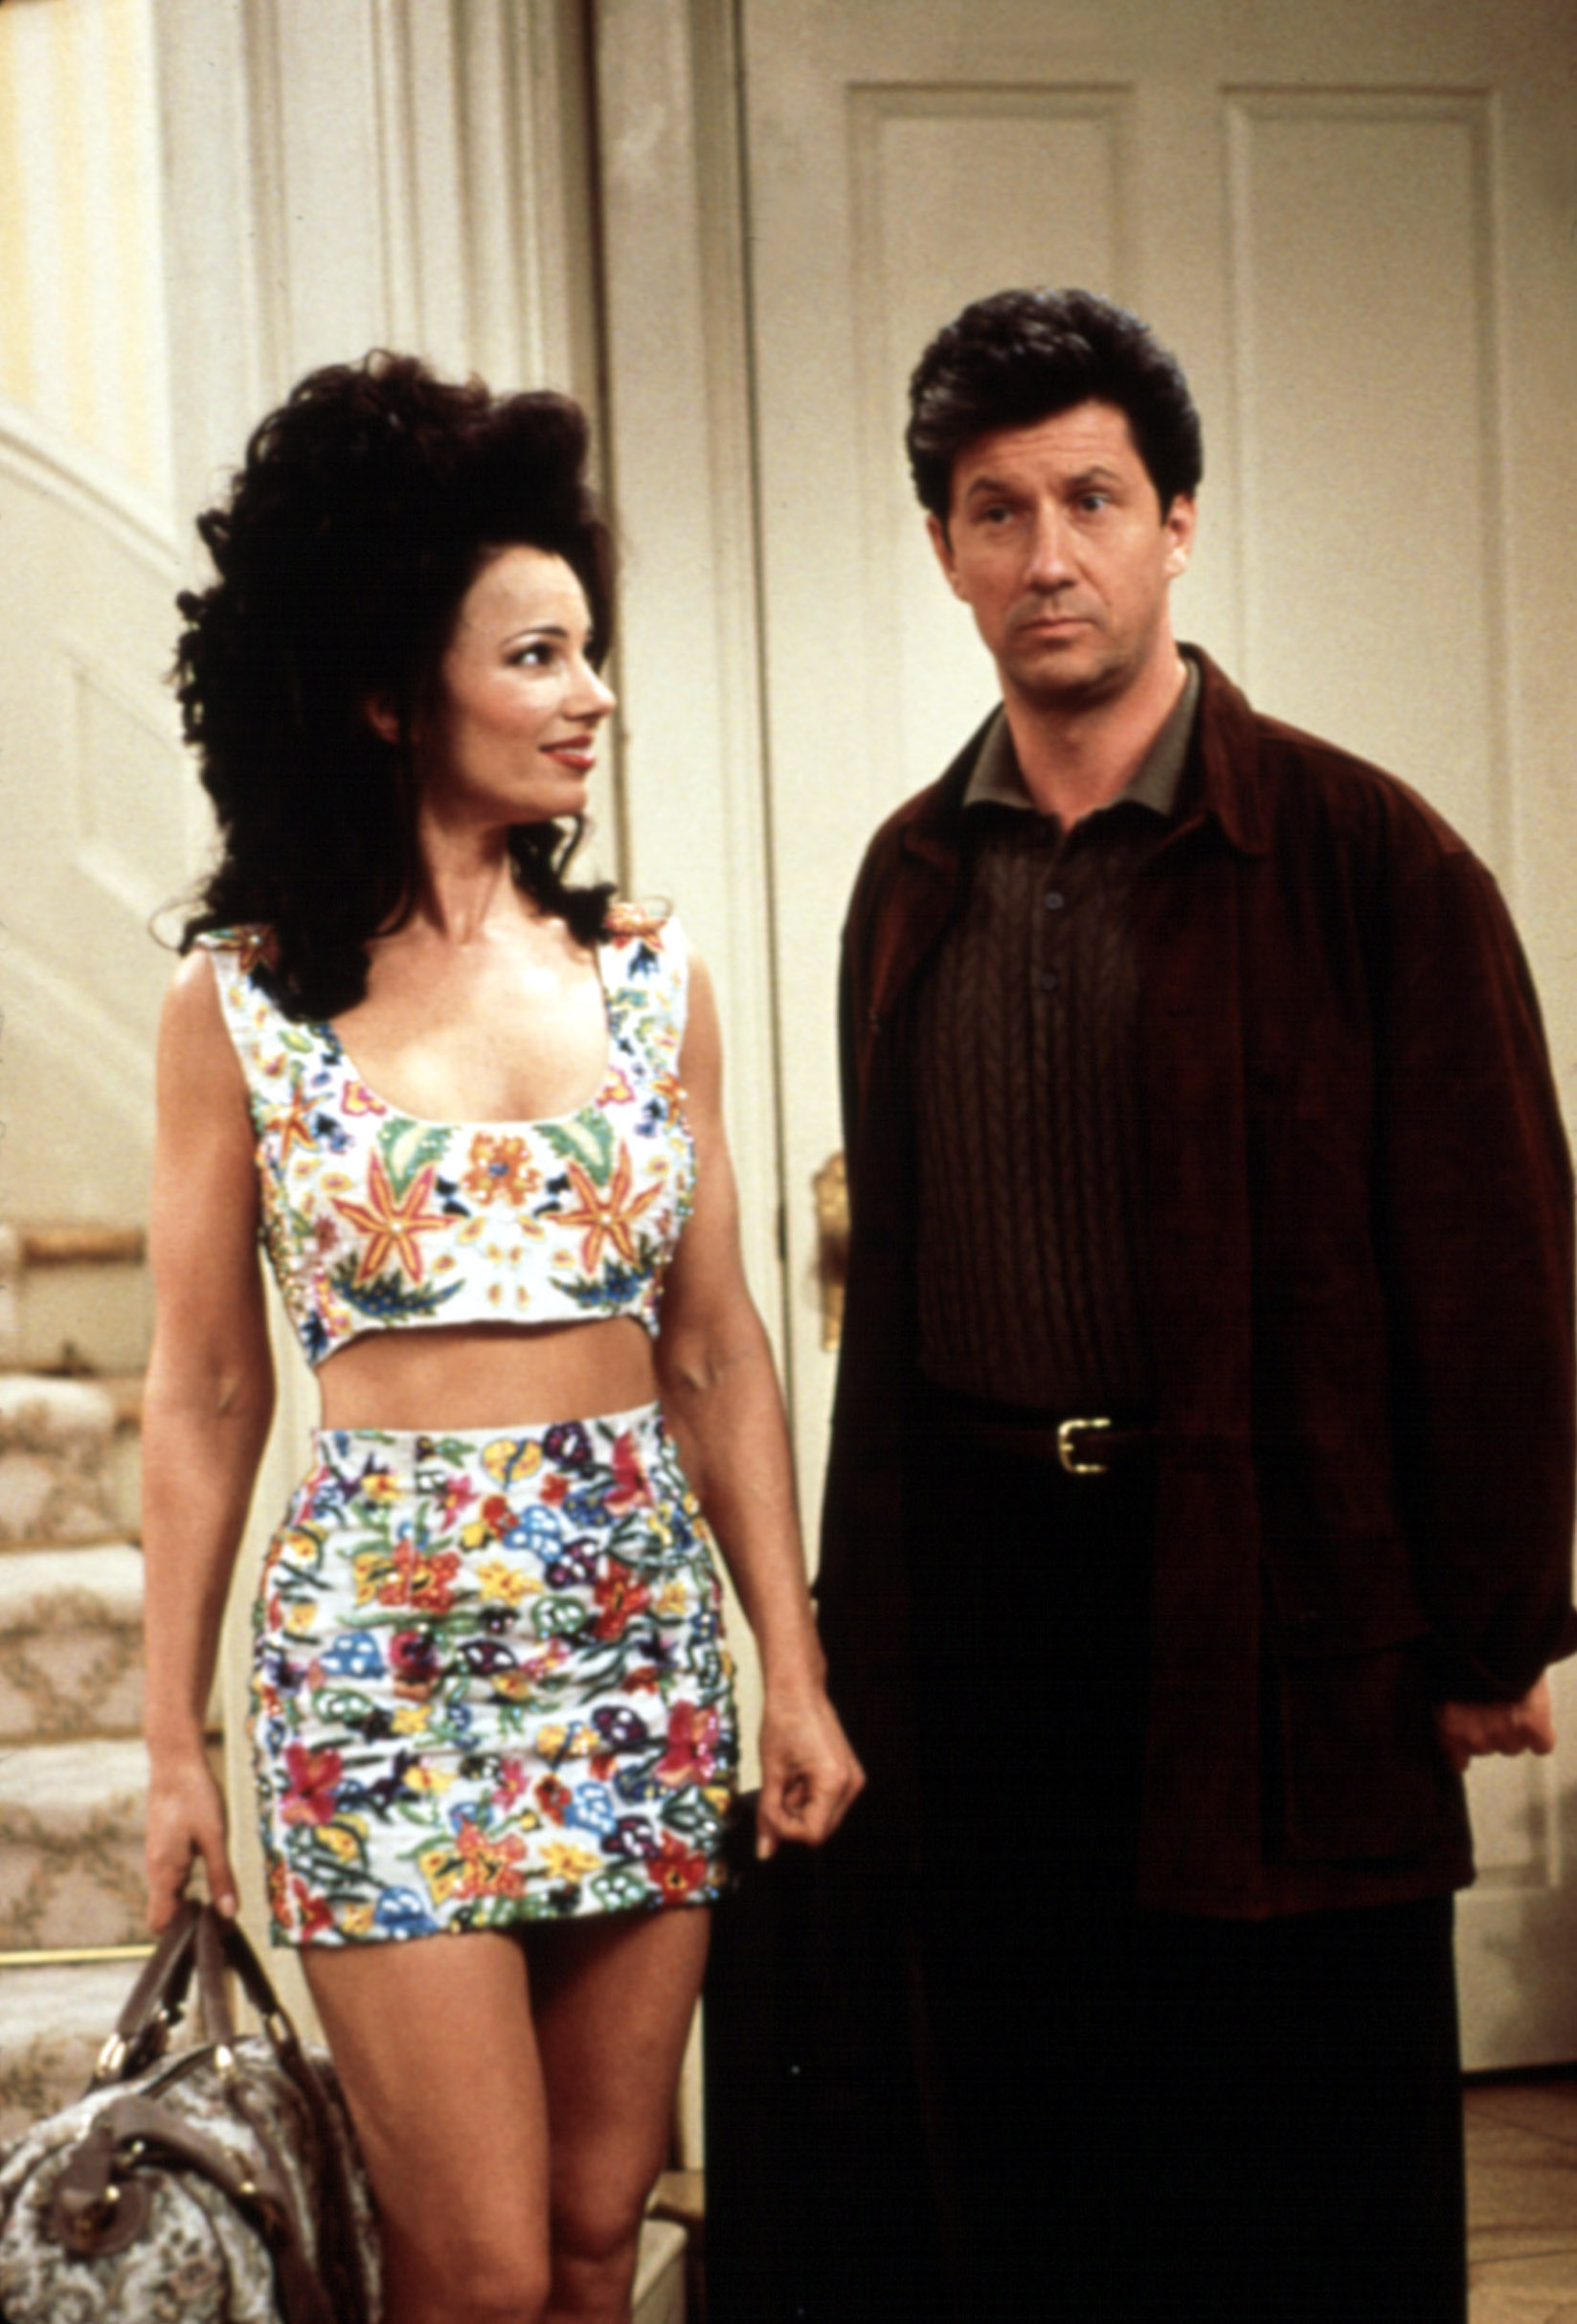 THE NANNY, Fran Drescher, Charles Shaughnessy, 1993-99, Image: 99173666, License: Rights-managed, Restrictions: For usage credit please use; Courtesy Everett Collection, Model Release: no, Credit line: Everett Collection  Col / Everett / Profimedia